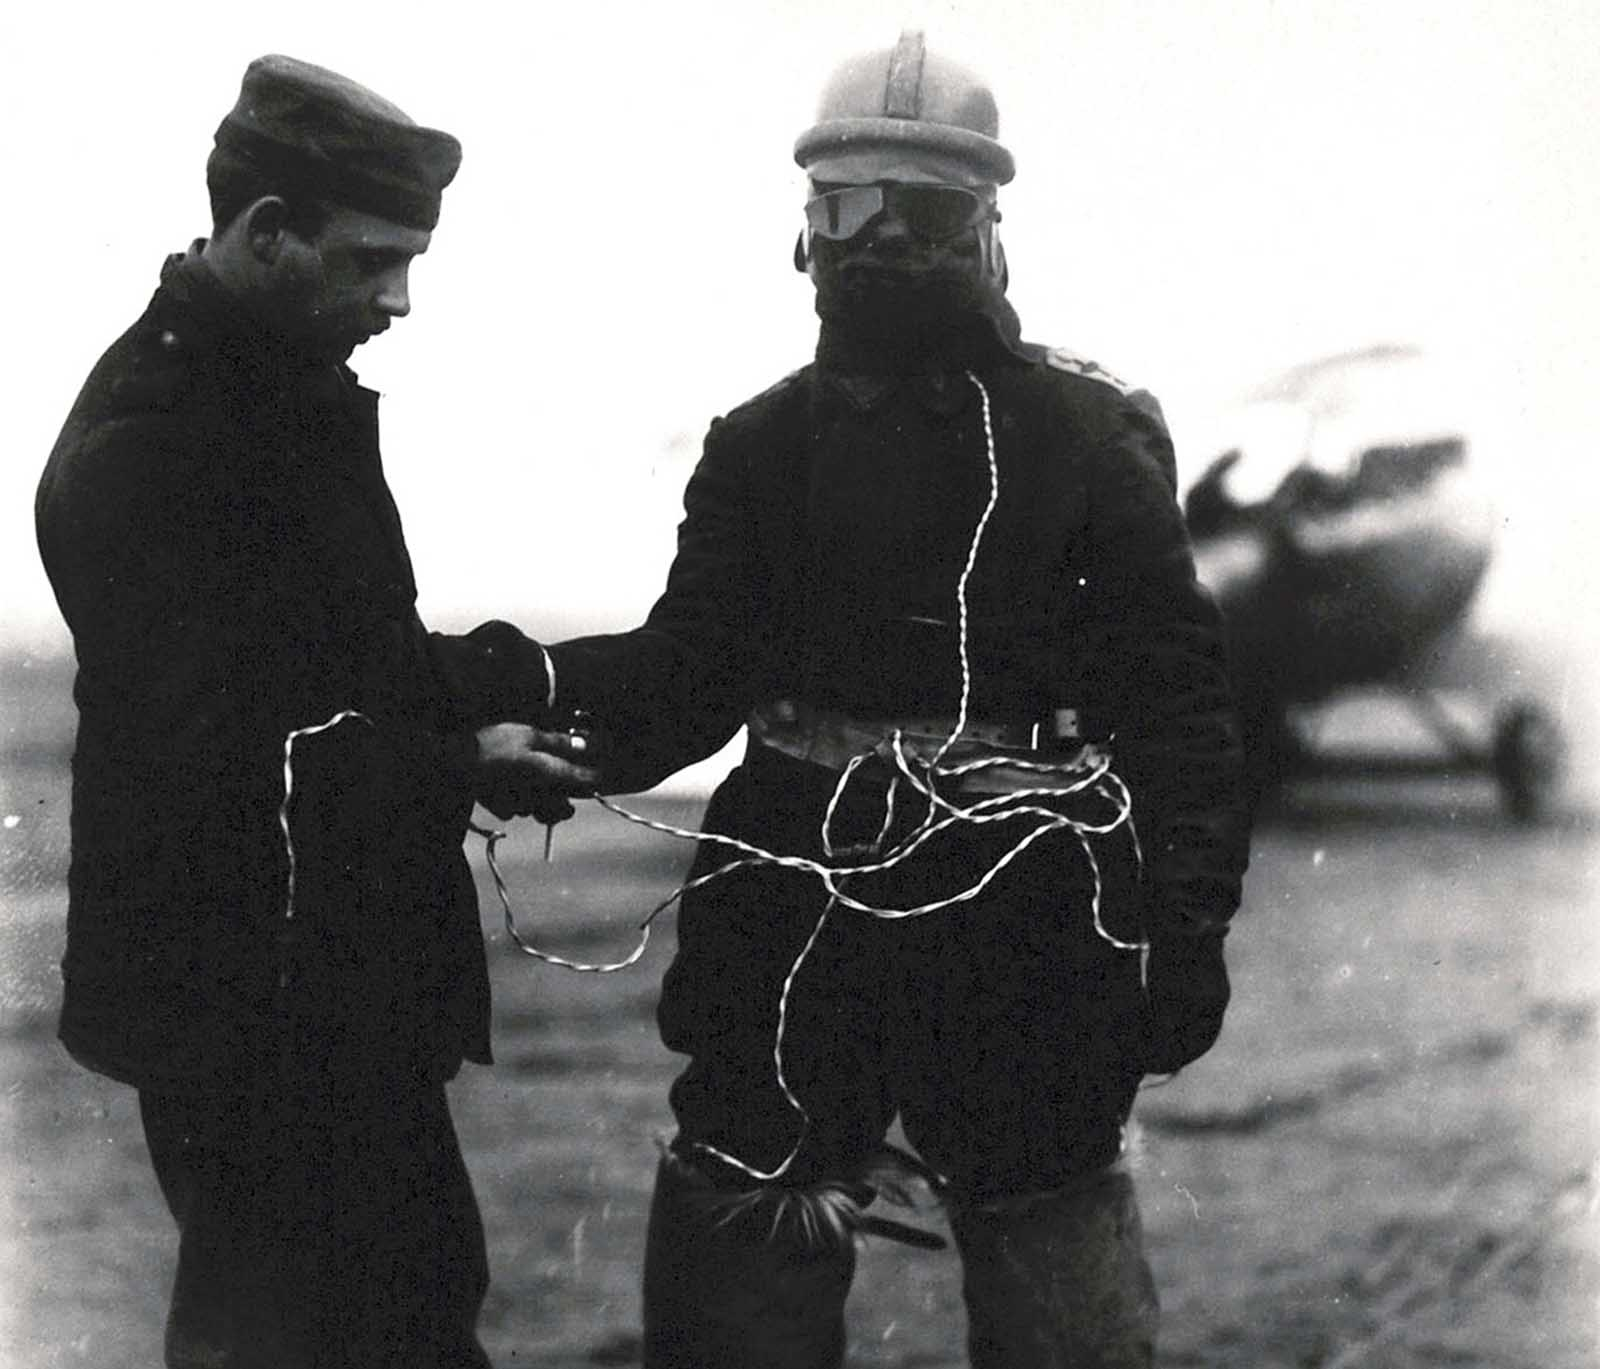 A German aviator's suit is equipped with electrically heated face mask, vest, and fur boots. Open cockpit flight meant pilots had to endure sub-freezing conditions.